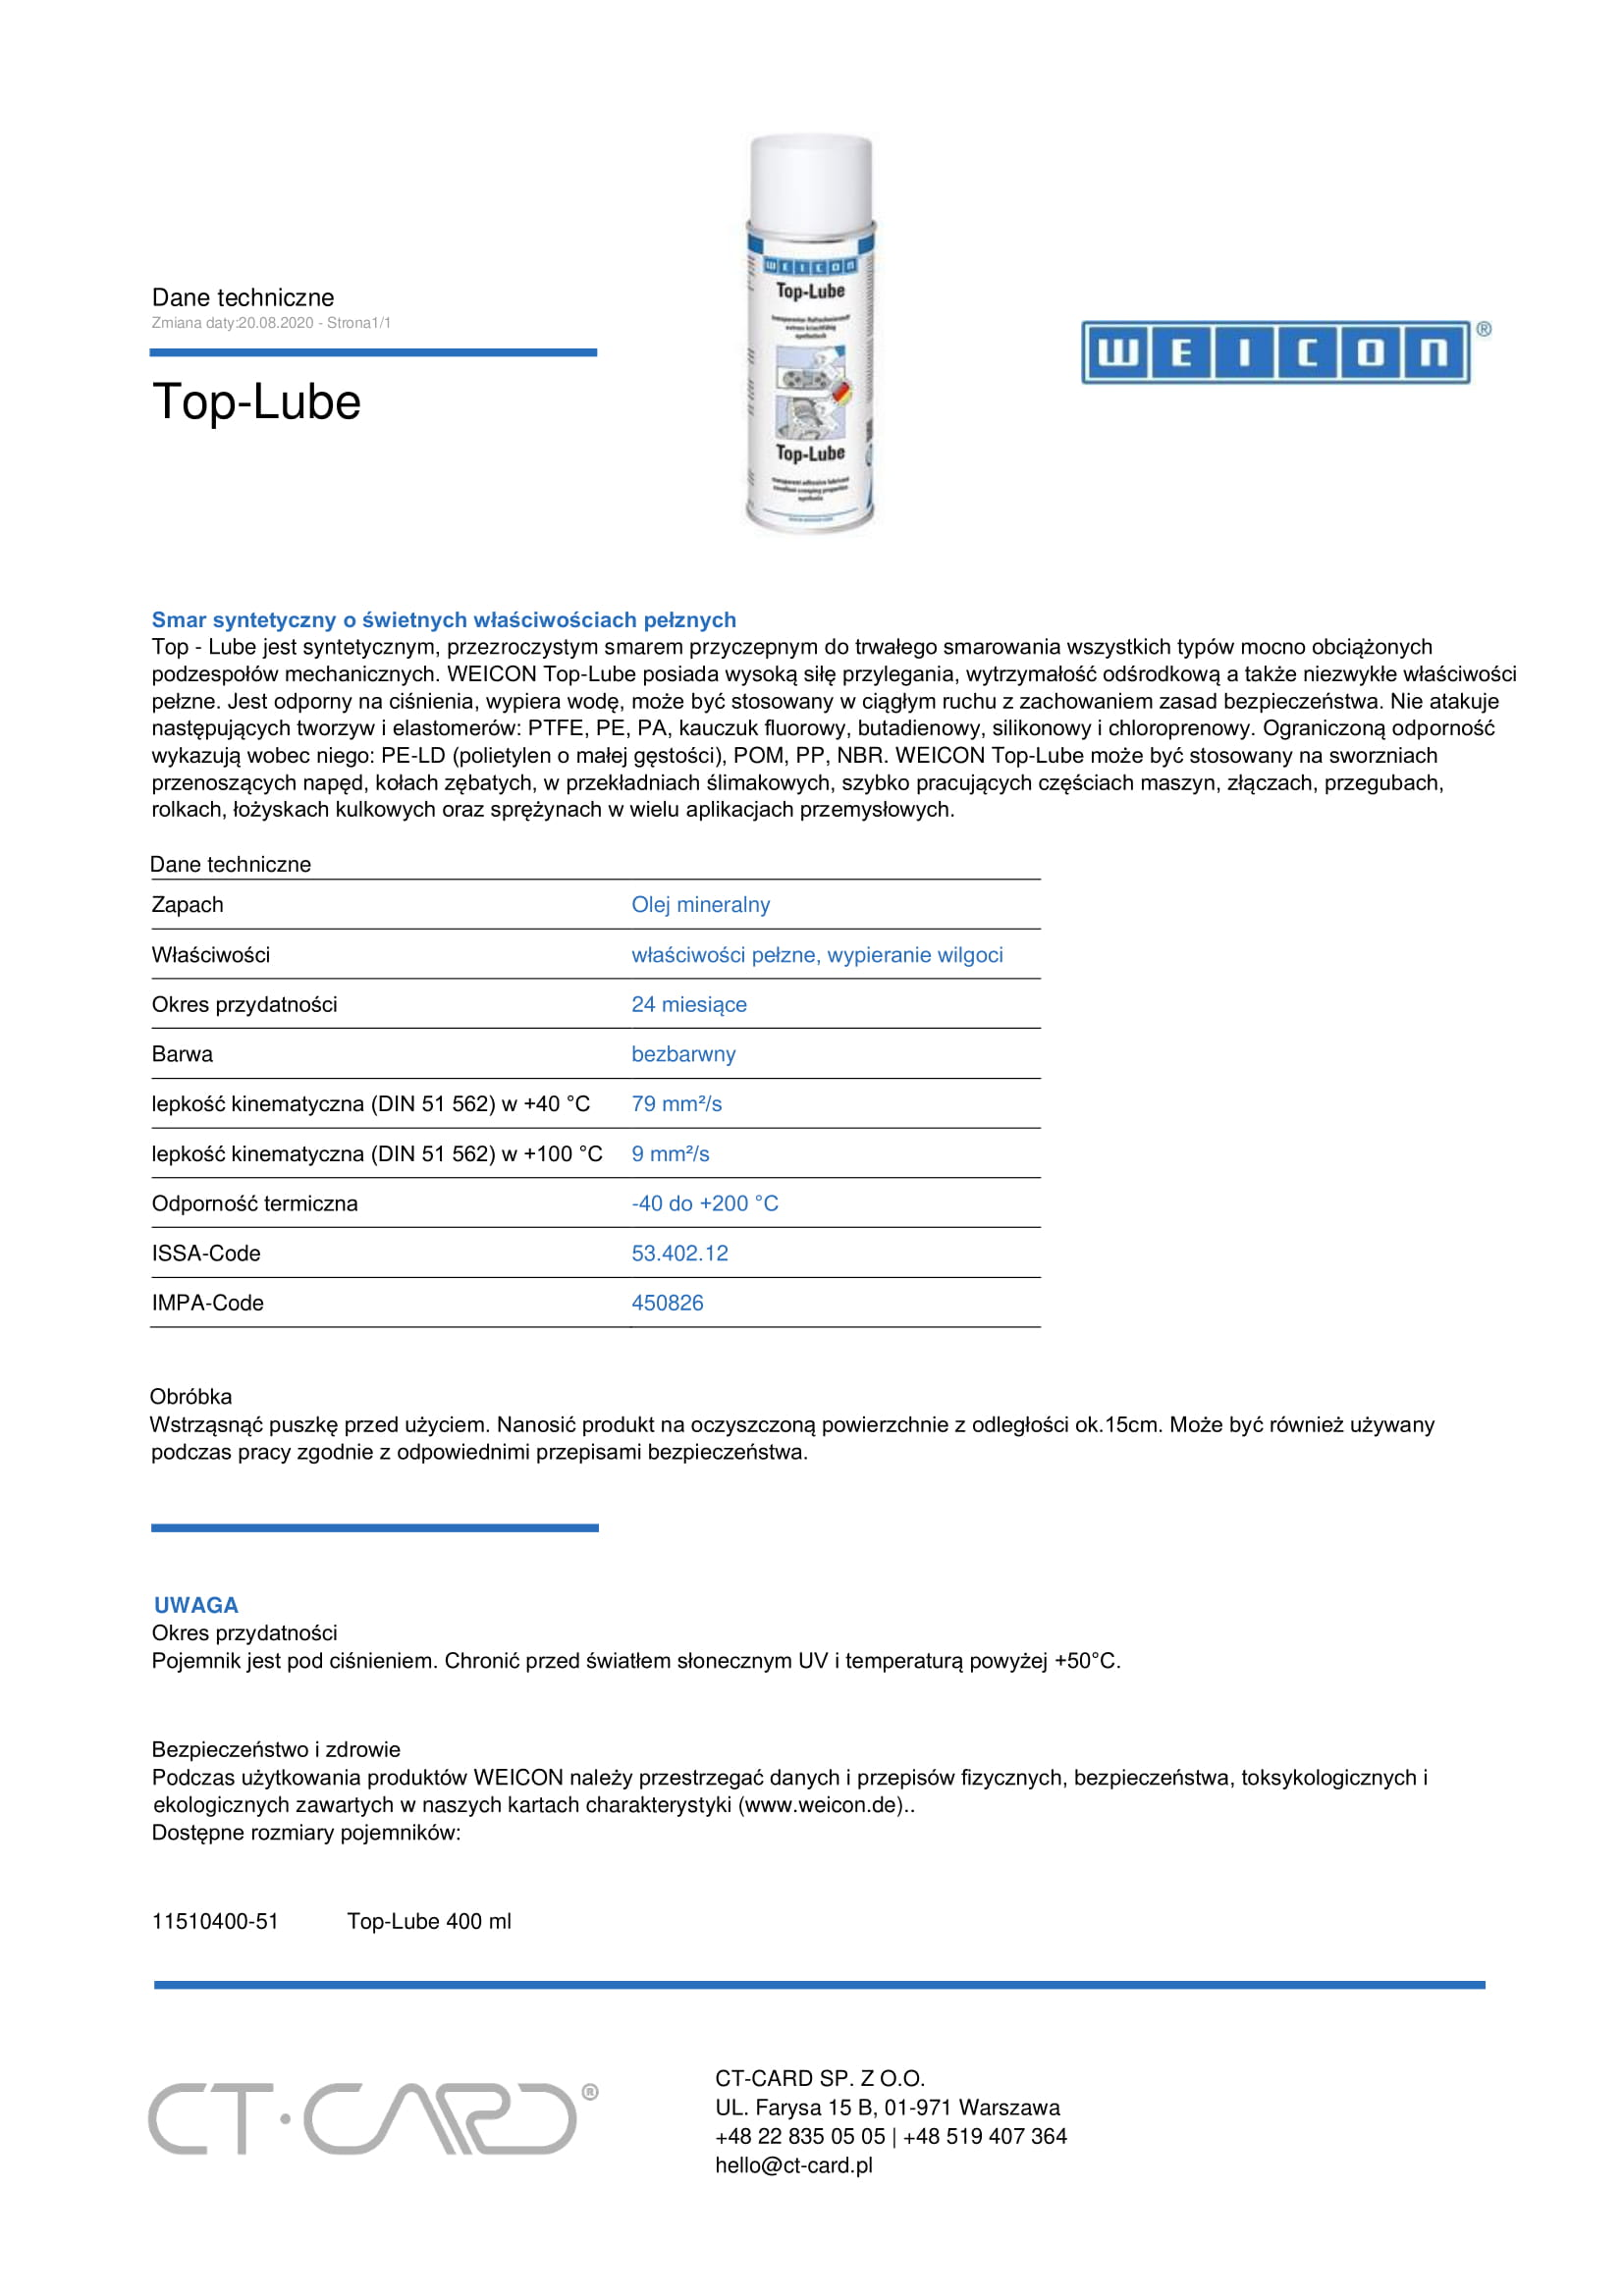 Top-Lube-1